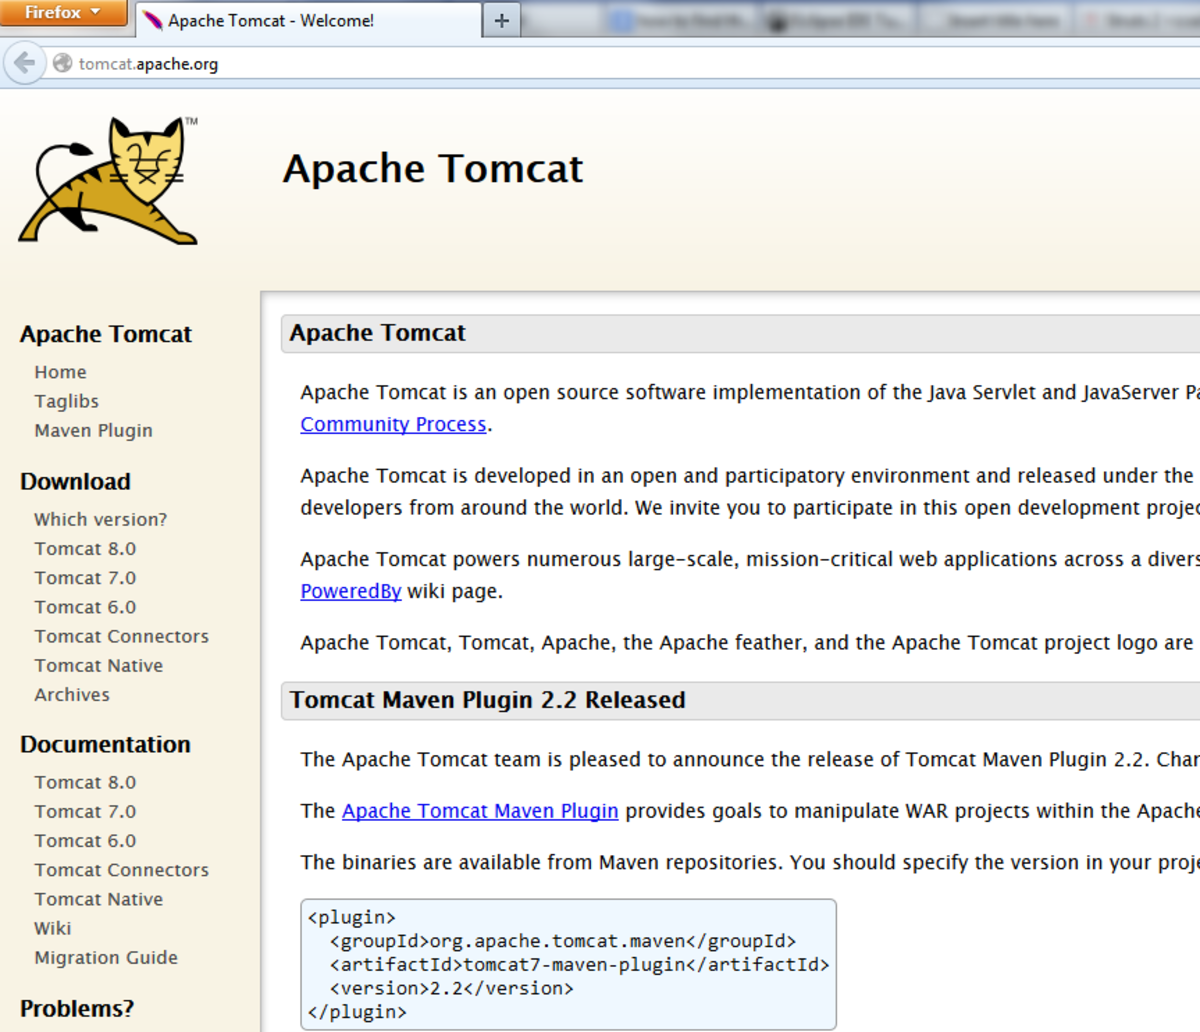 How to Install Apache Tomcat in Spring Tool Suite/Eclipse